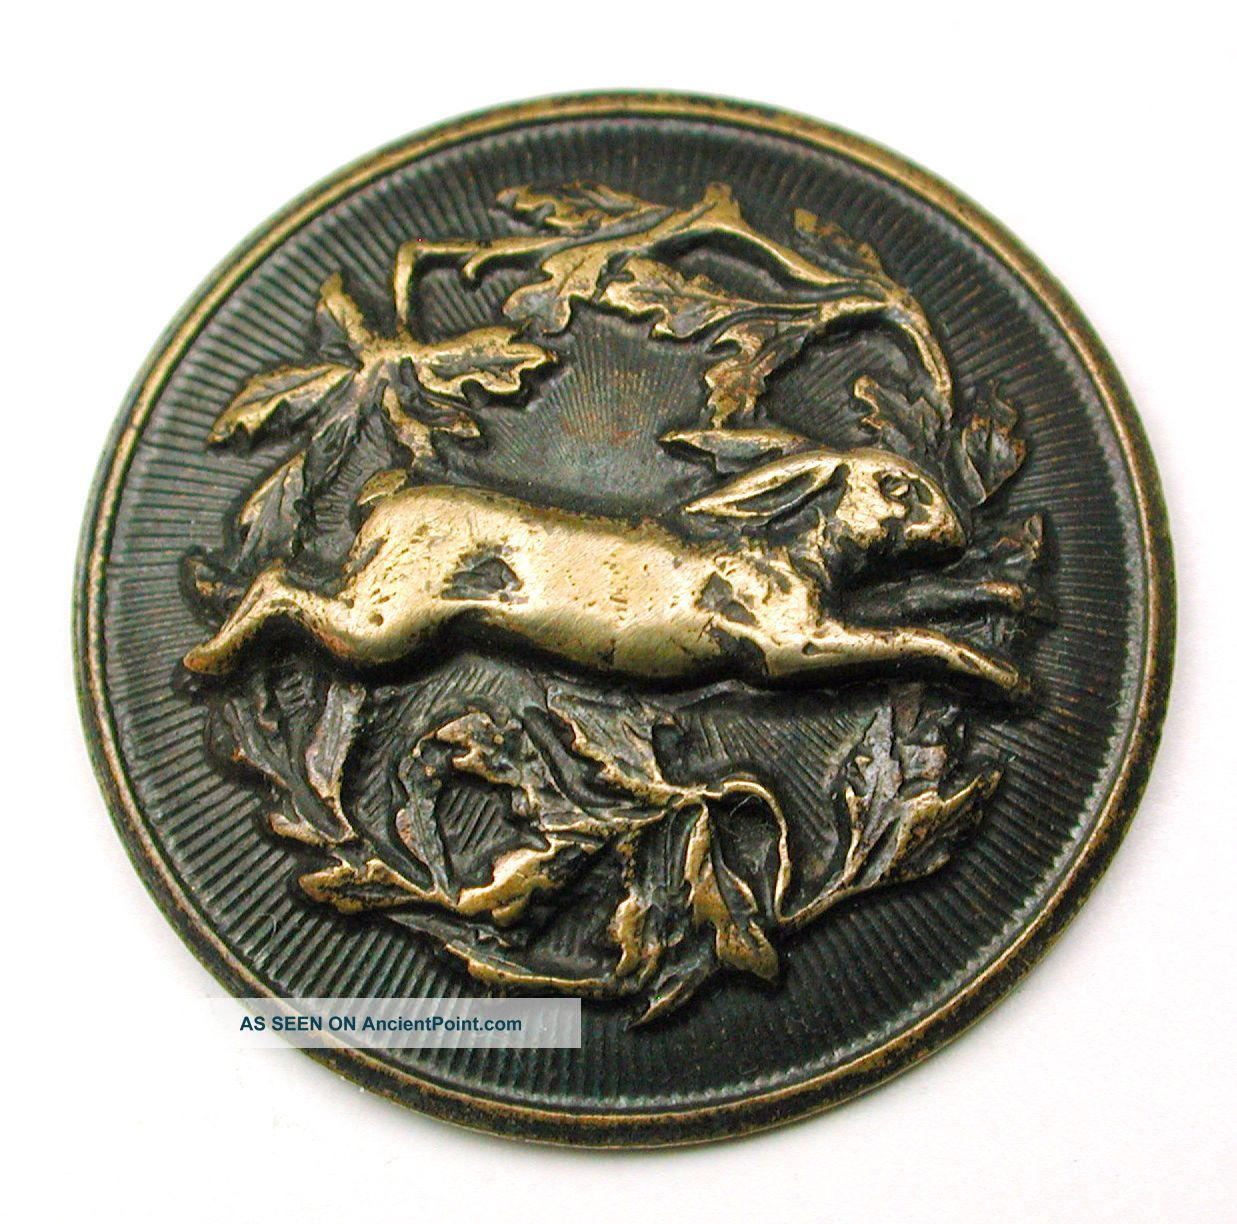 Antique Tinted Brass Button Running Rabbit & Oak Leaves Design - 1